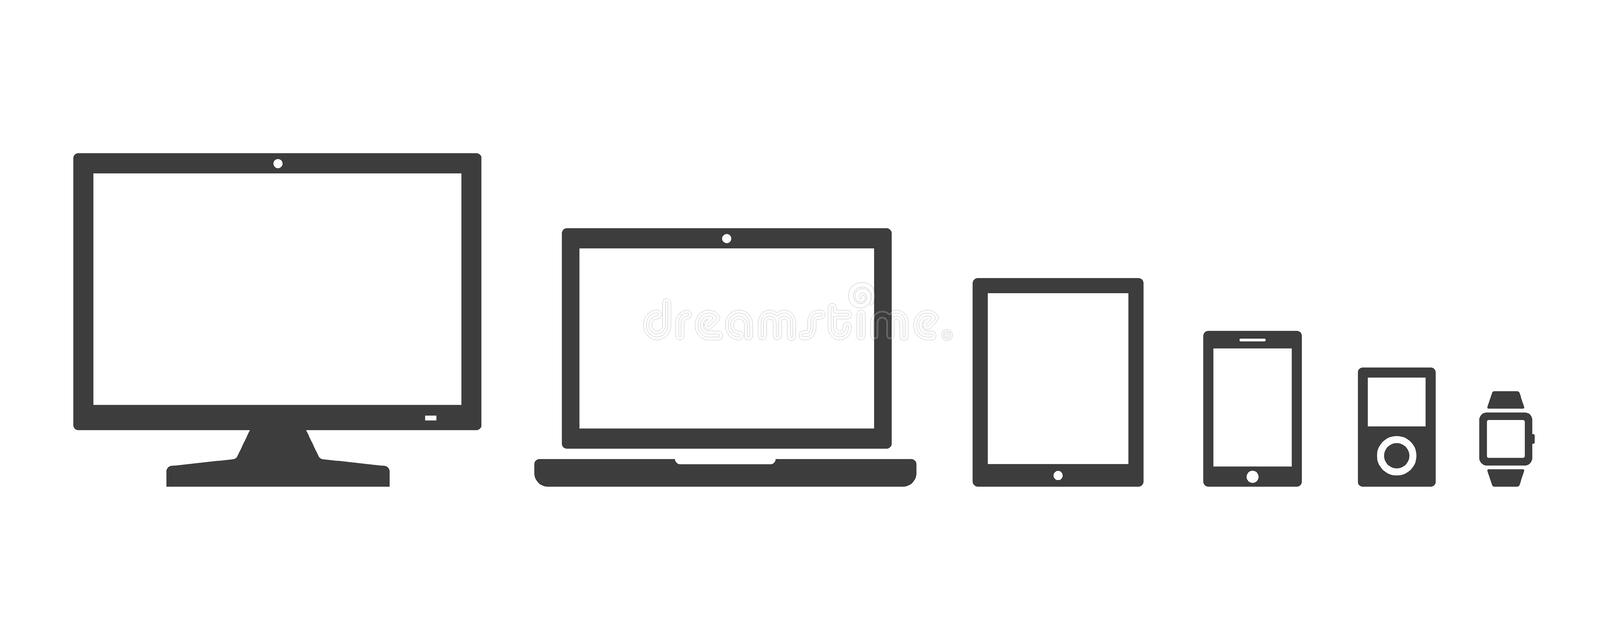 Vector Digital Device icon isolated on white background vector illustration